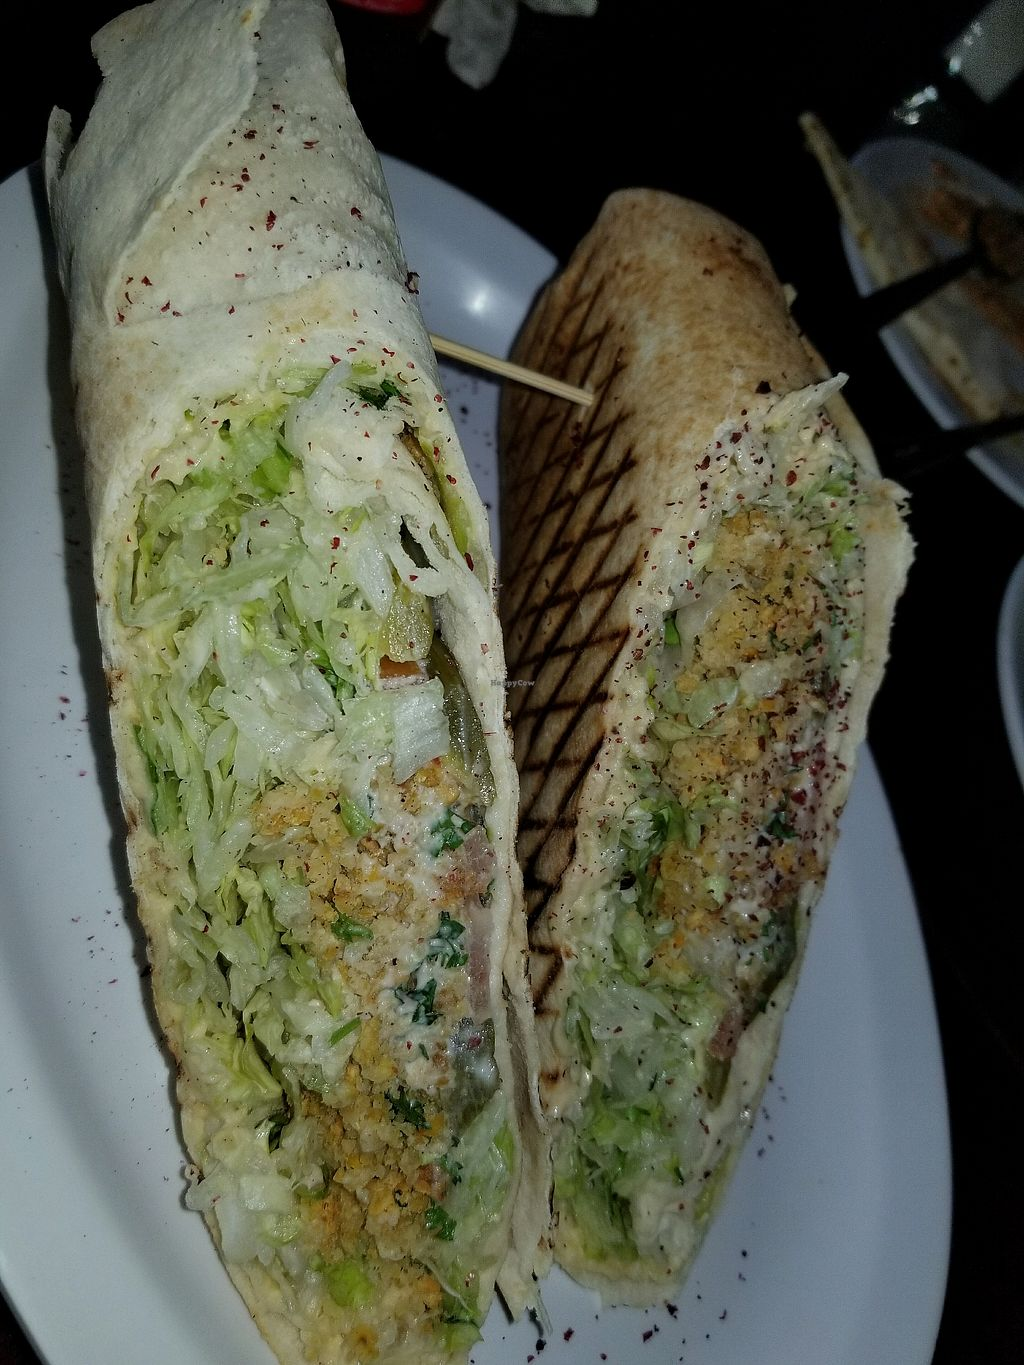 """Photo of The Hummus House   by <a href=""""/members/profile/KendraWolfe"""">KendraWolfe</a> <br/>Falafel panini  <br/> April 21, 2018  - <a href='/contact/abuse/image/73626/389184'>Report</a>"""